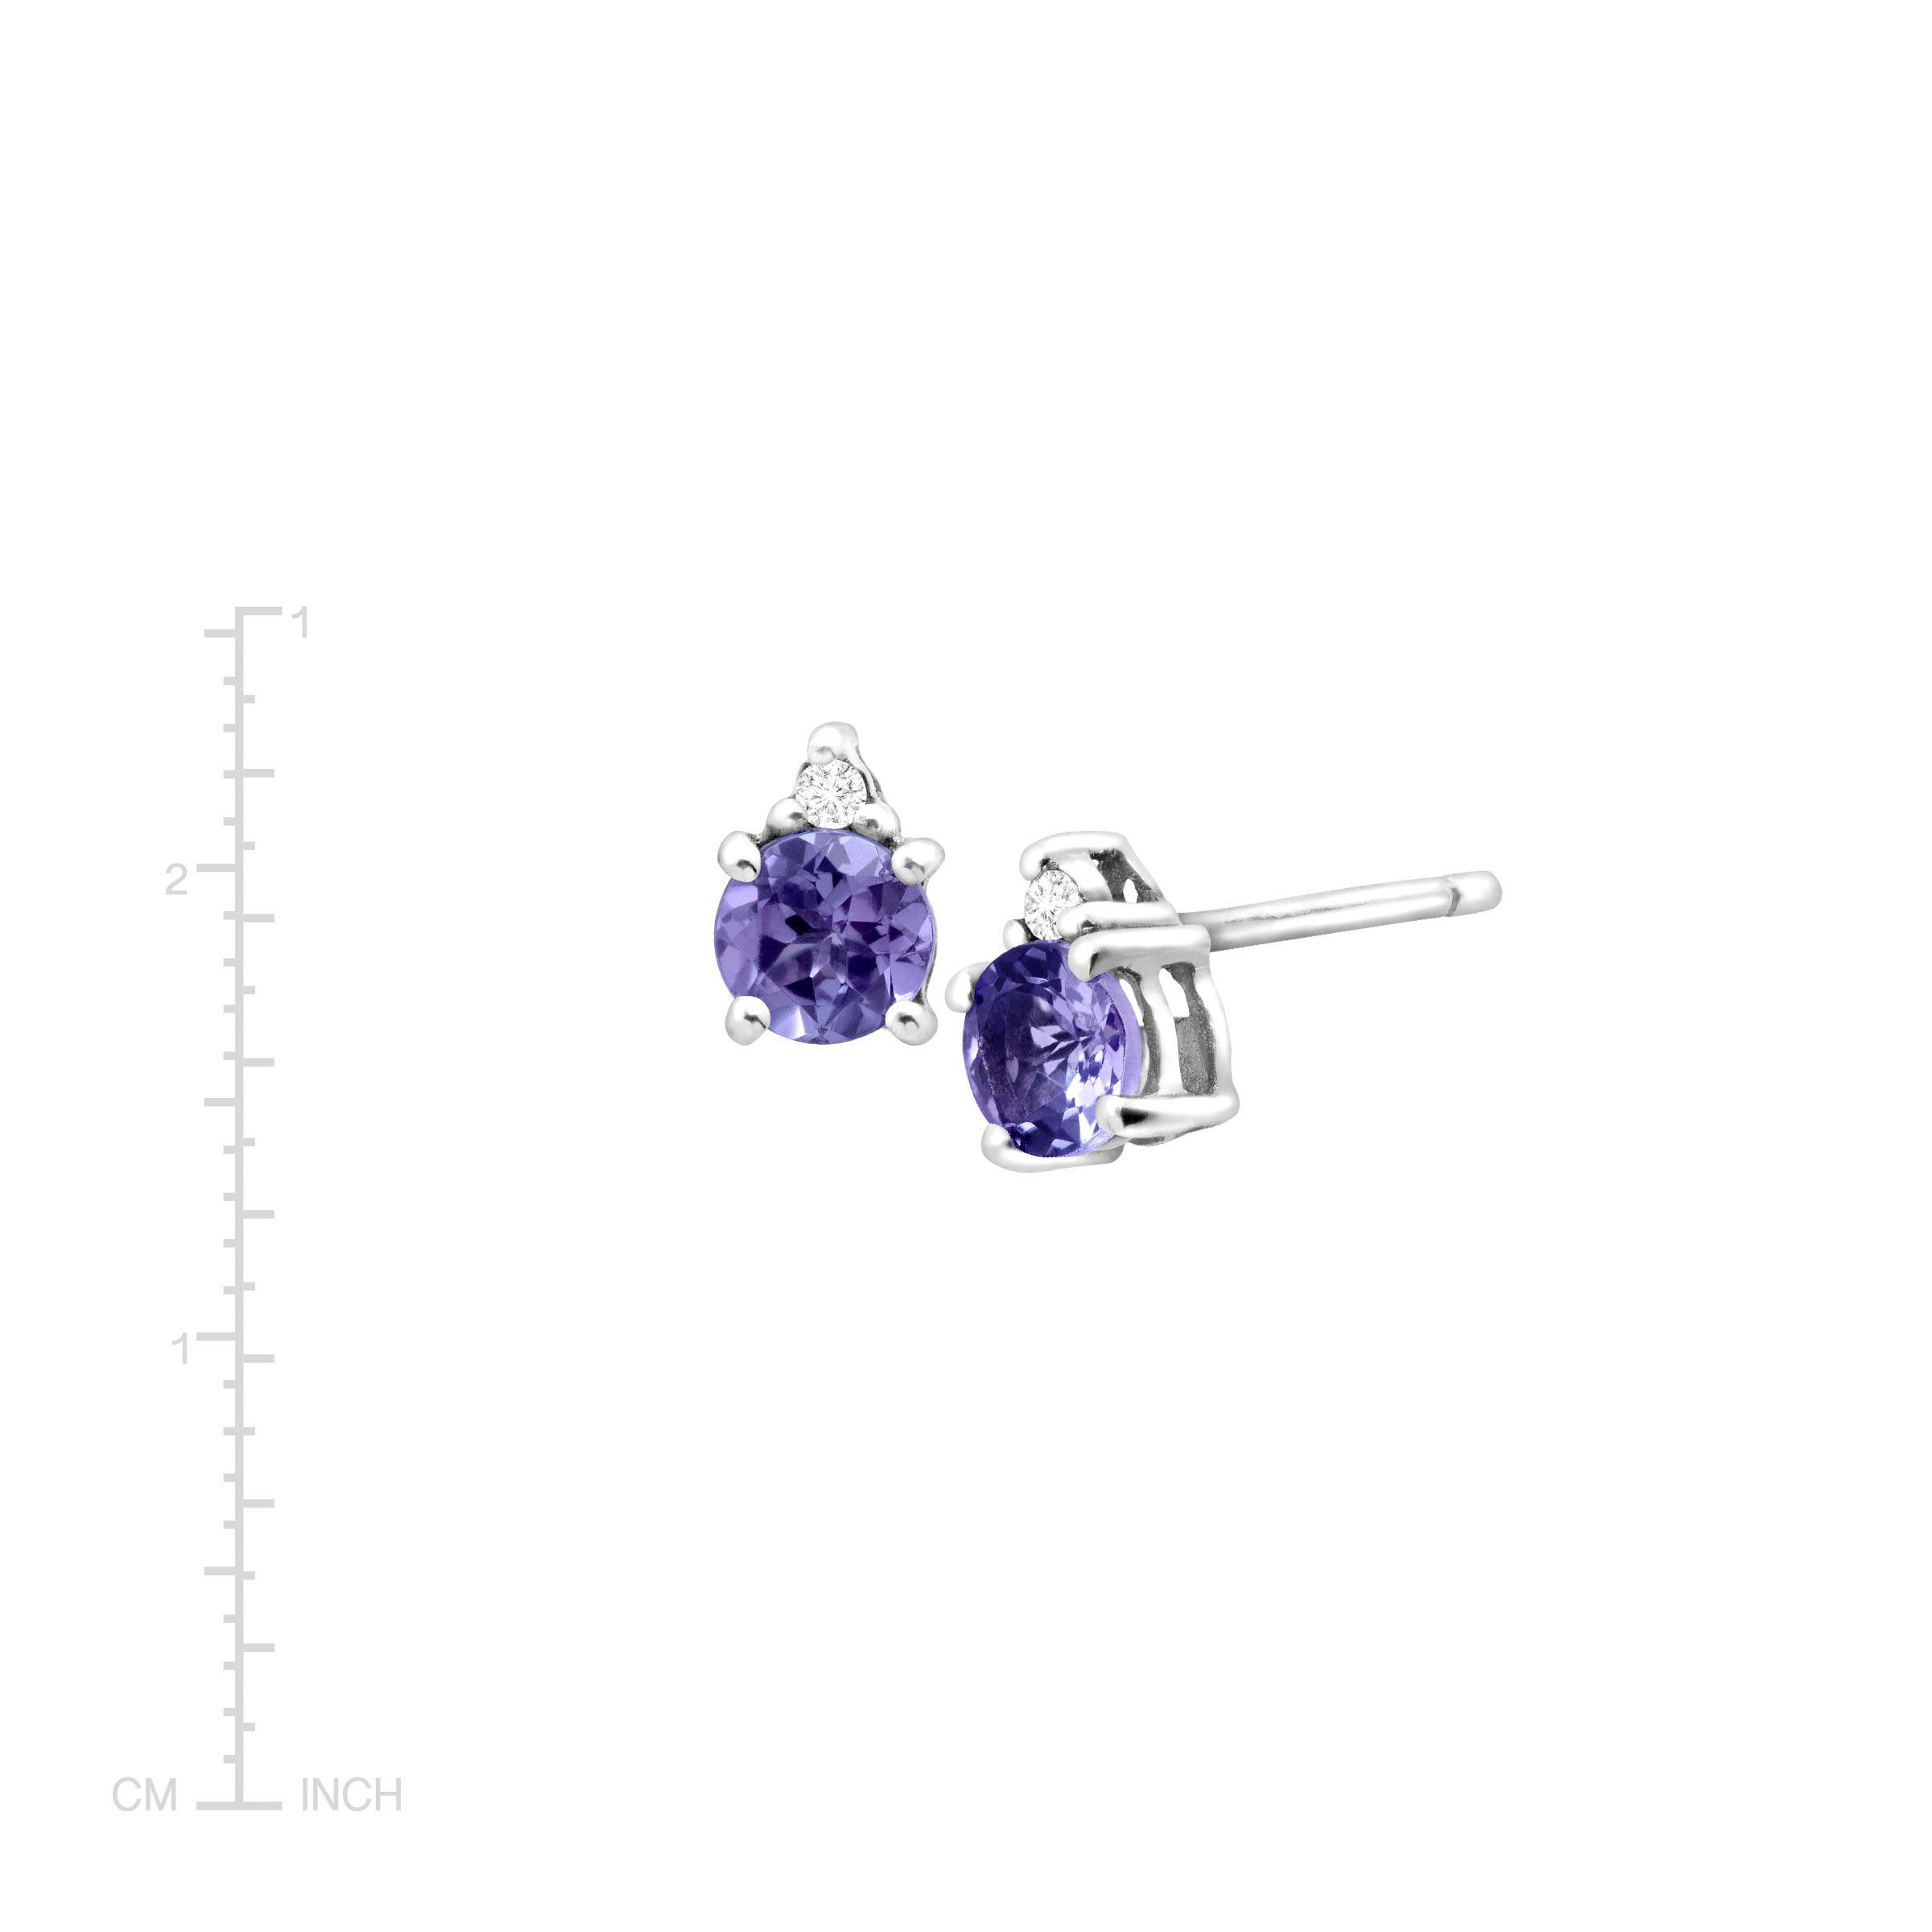 jewelry cttw gold products stud collections earrings set tanzanite color martini white mar vir ct